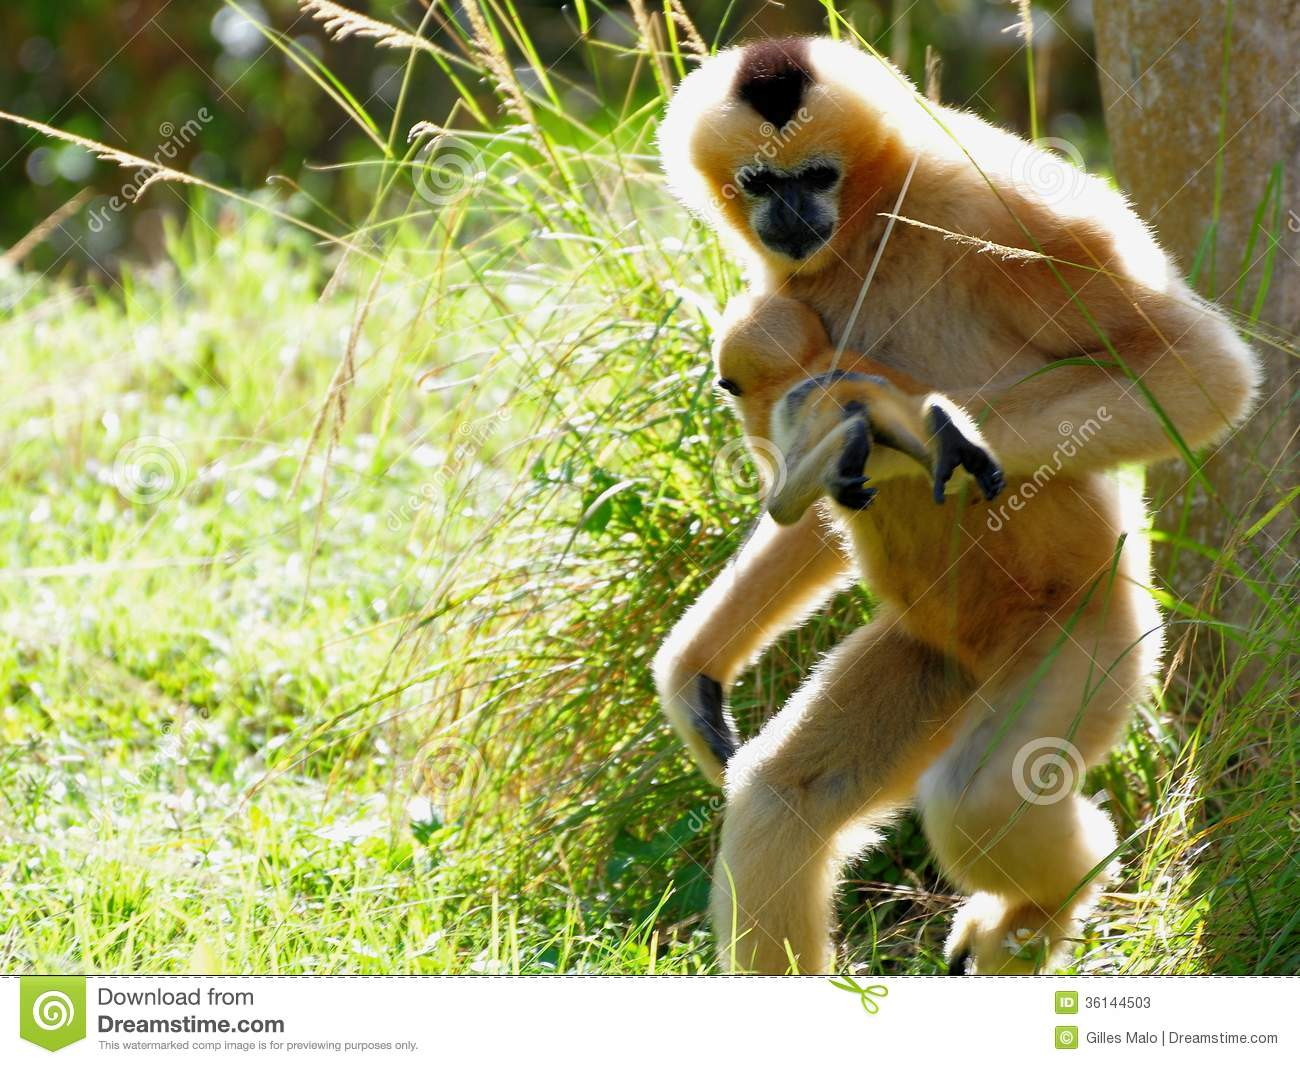 ... monkey (Nomascus) carrying offspring in Zoo Miami, South Florida